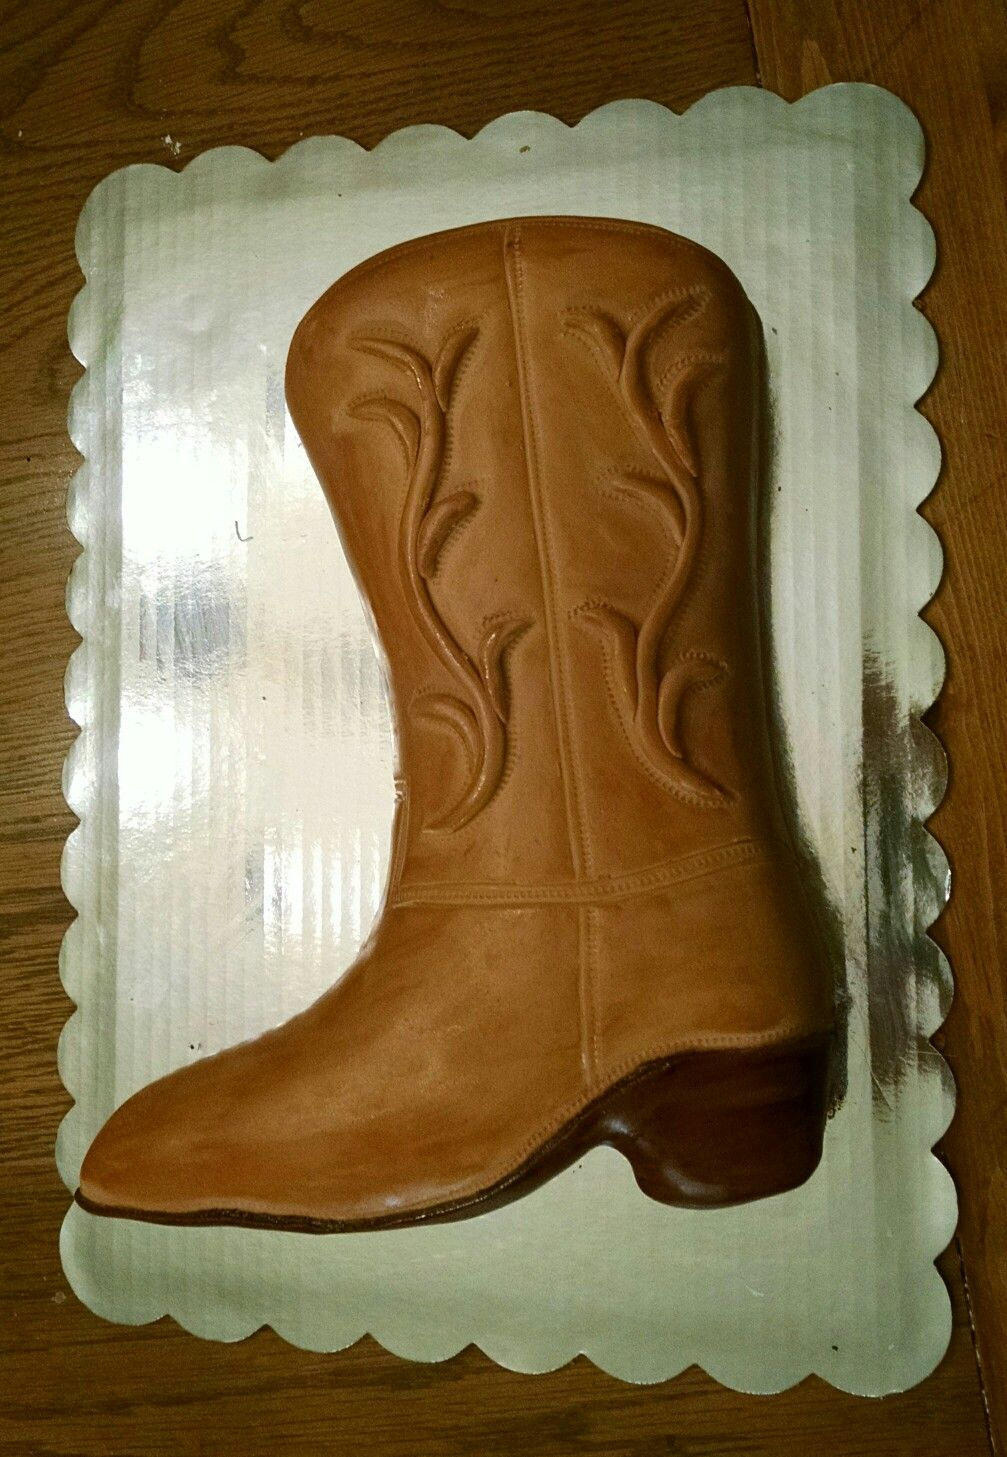 Cowboy Boot Cake With Images Cowboy Boot Cake Cowboy Cakes